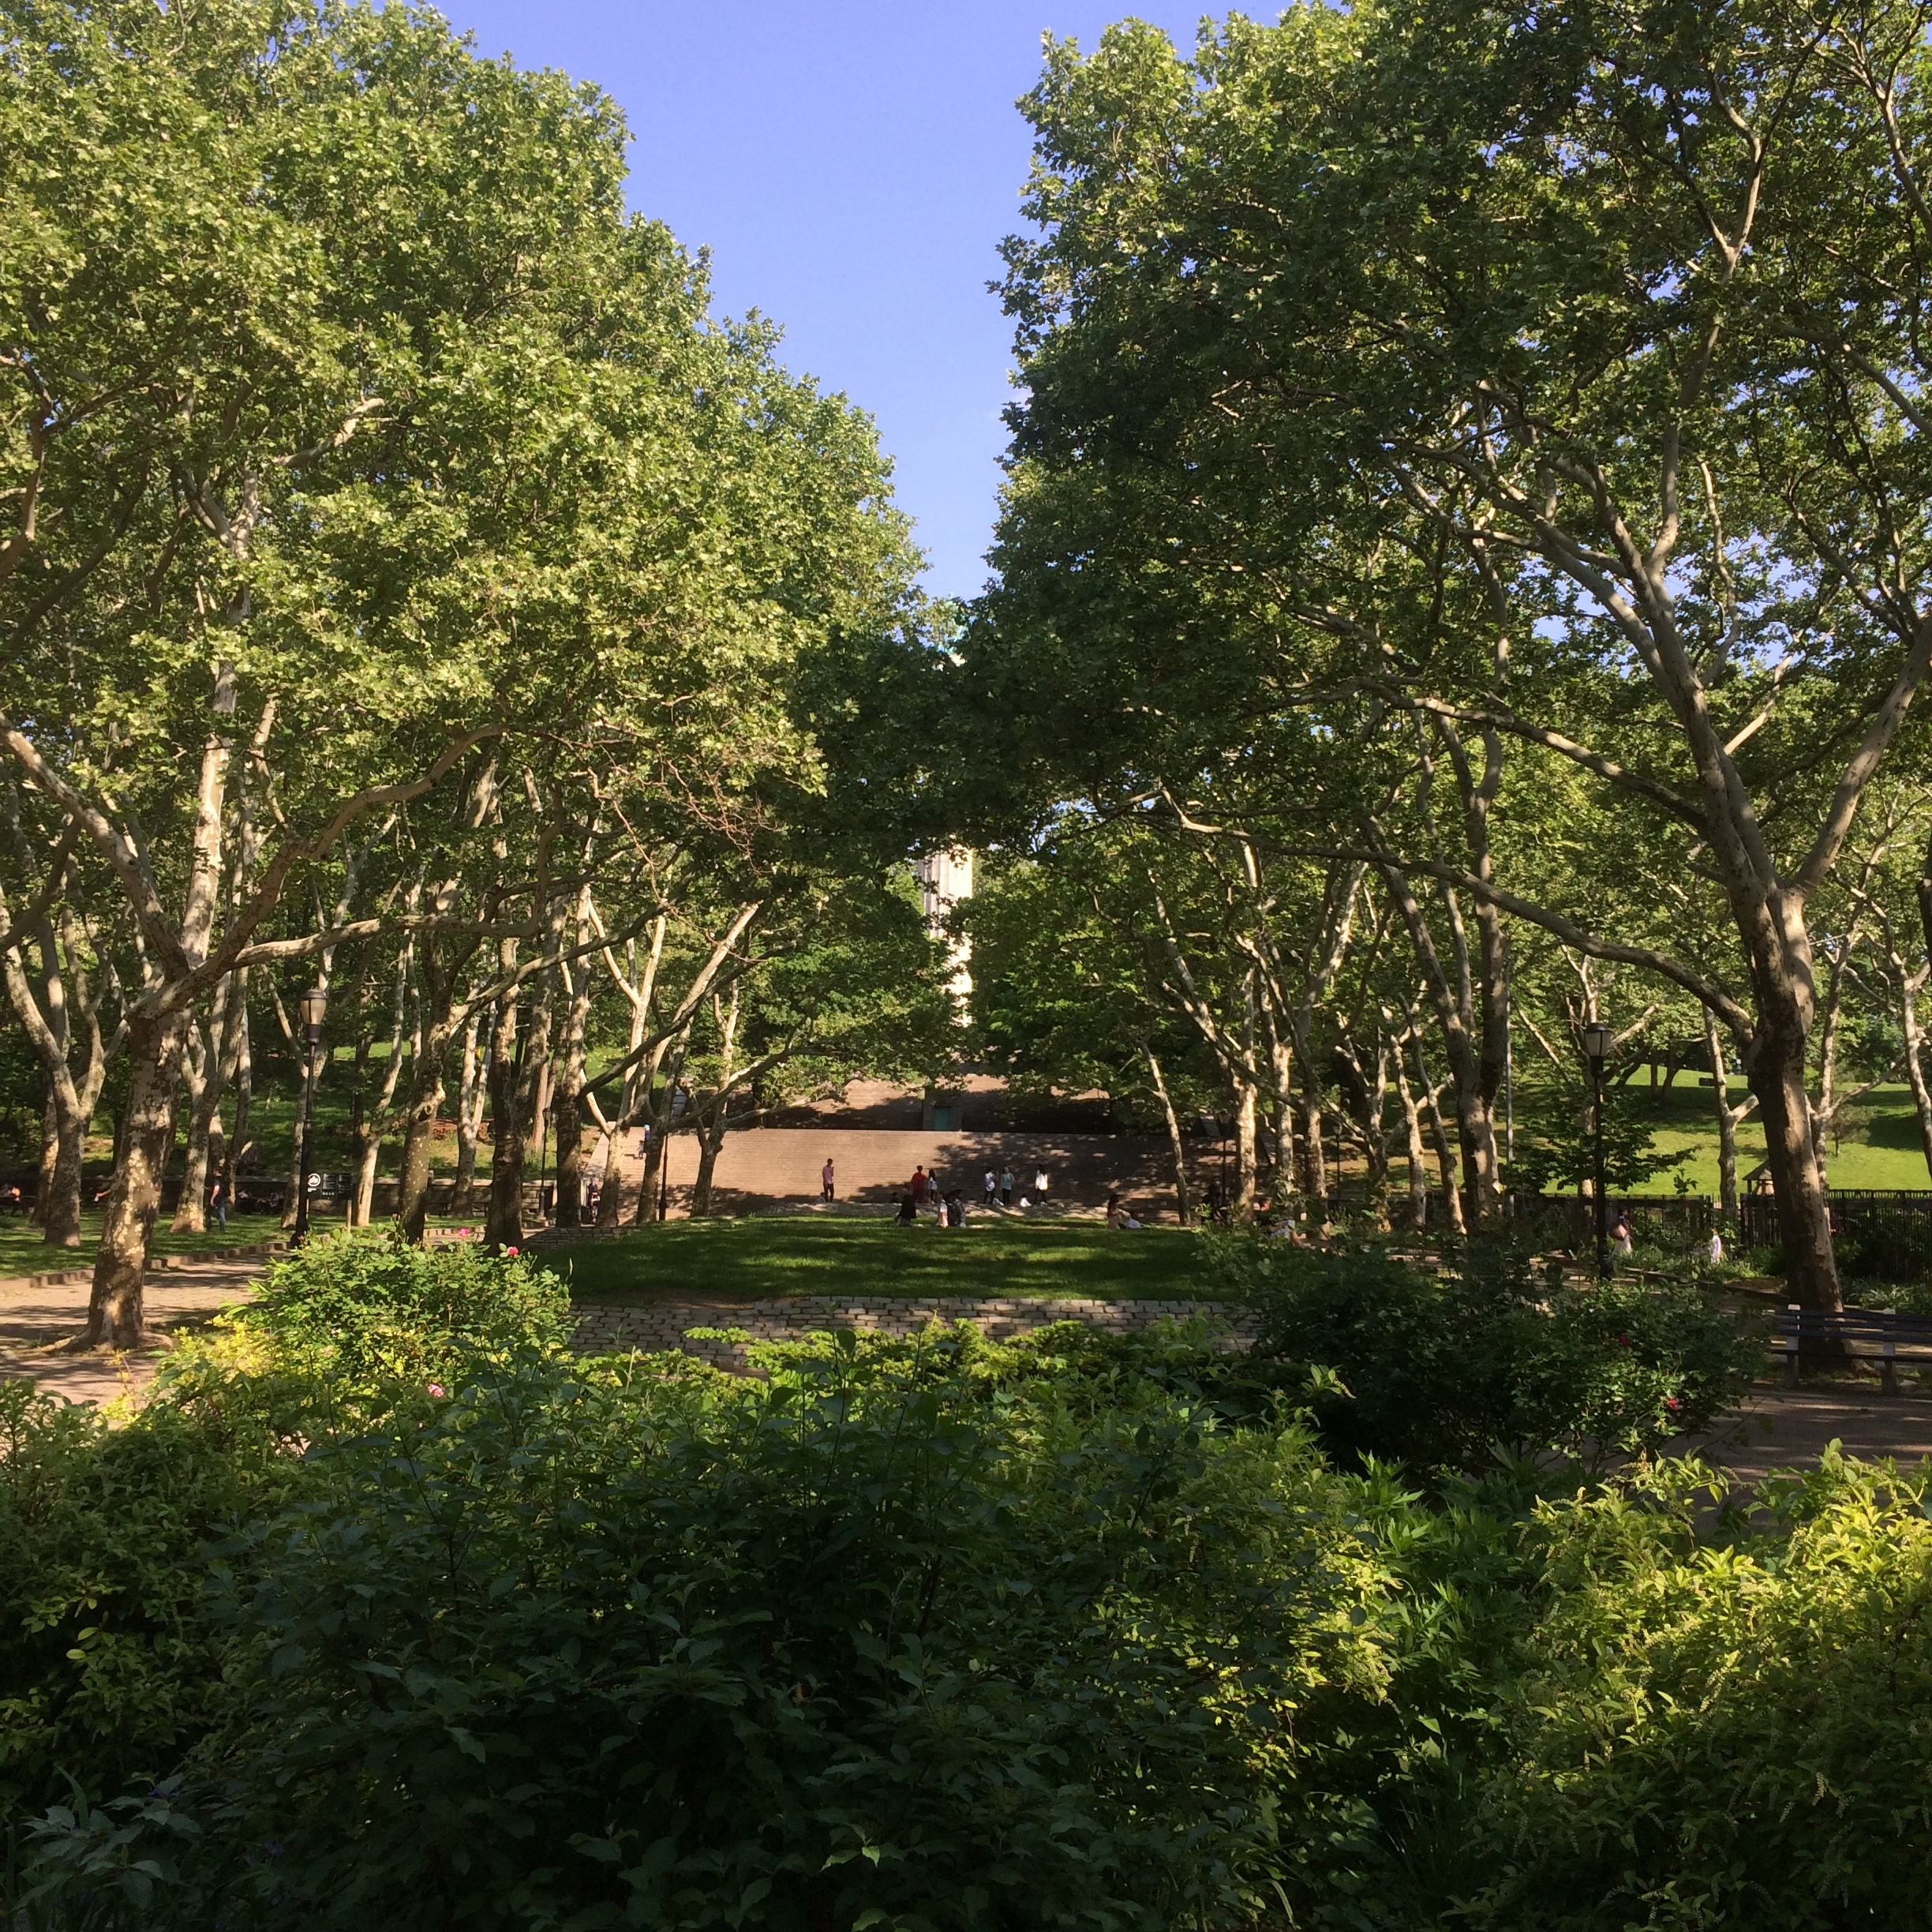 The Northern corner of the Park with the Prison Martyr's Monument peaking through the trees